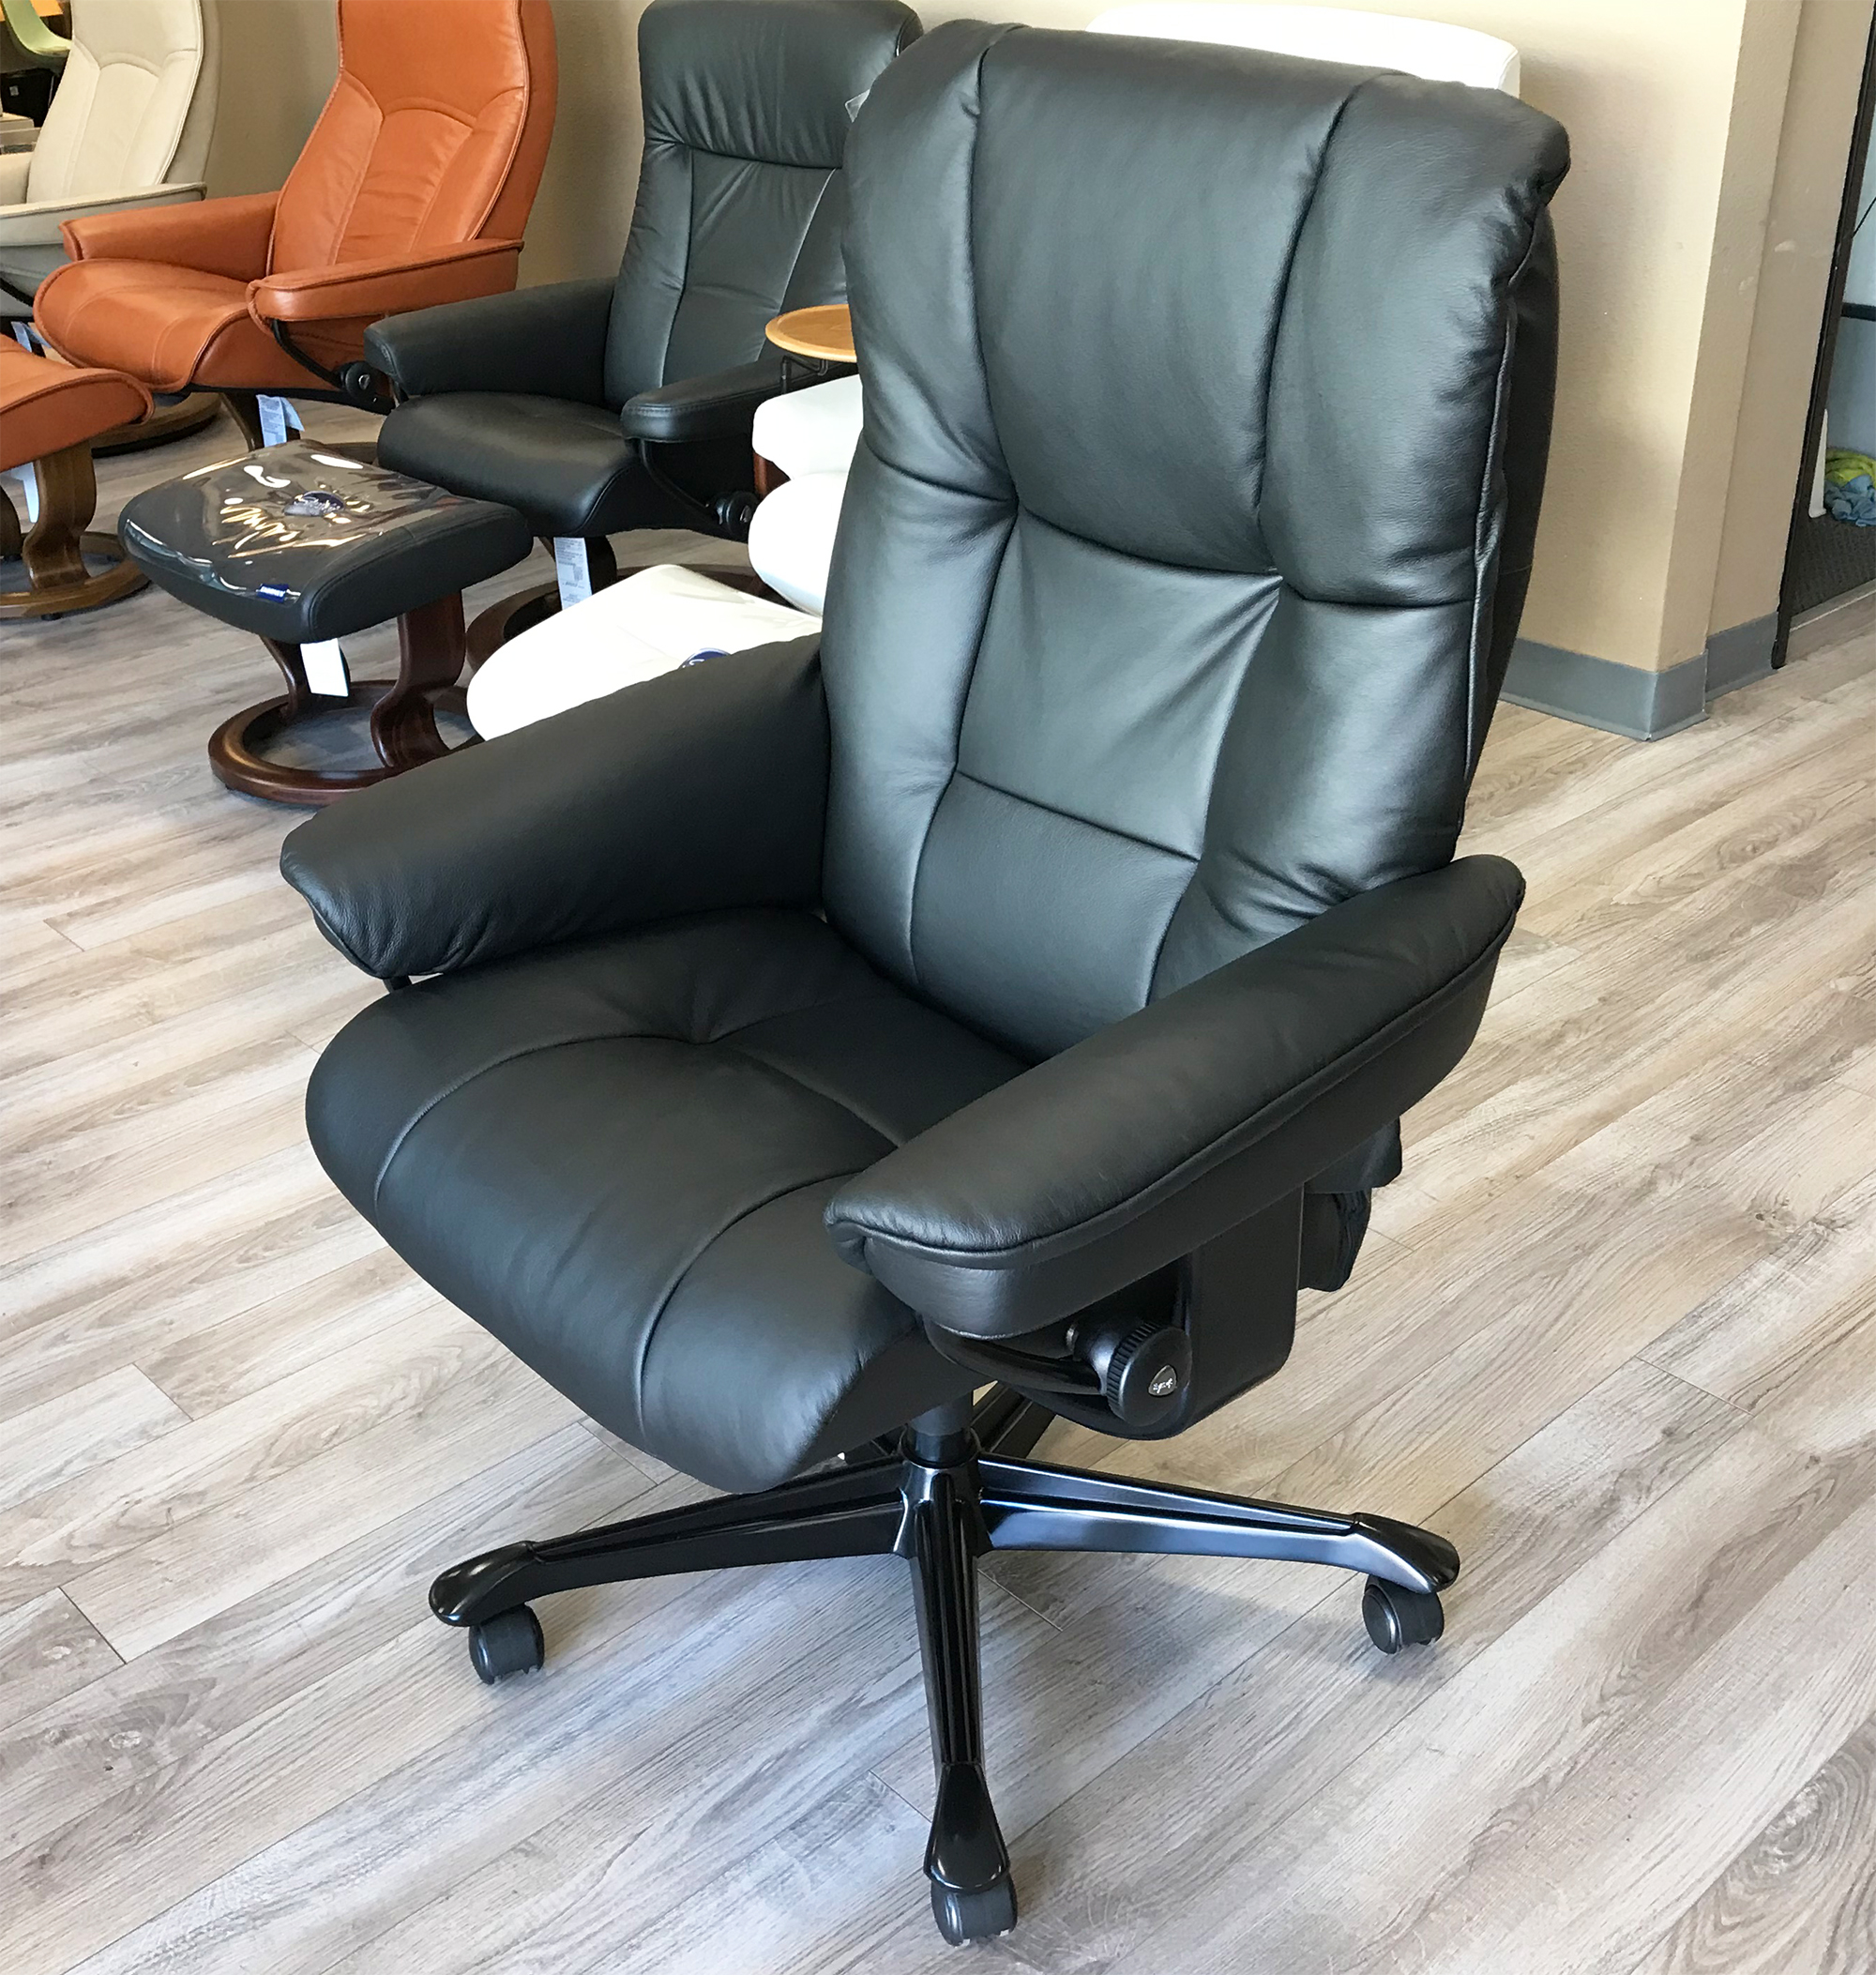 Stressless Office Chair Stressless Mayfair Office Desk Chair Paloma Black Leather